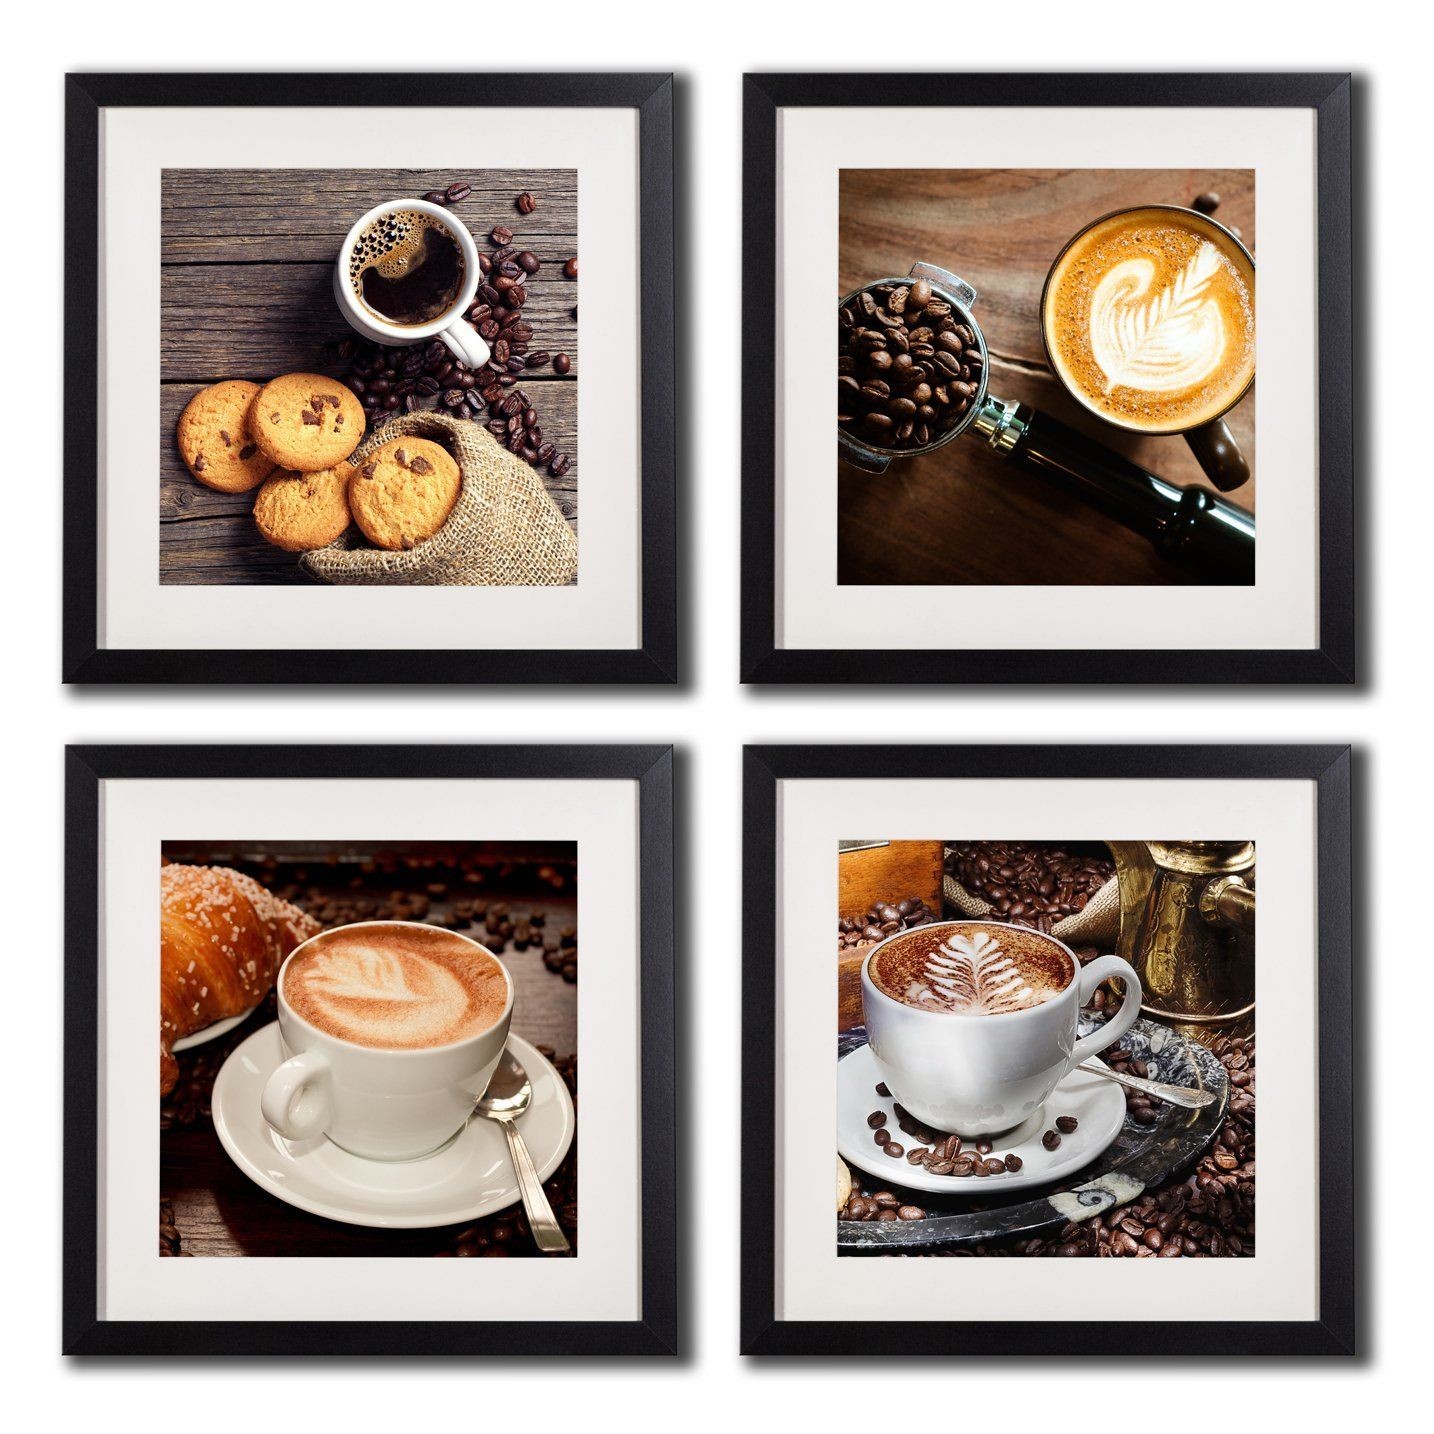 Coffee Framed Wall Art Decor Posters And Prints Modern Still Life Kitchen Artwork Painting Printed On C Kitchen Artwork Decorating With Pictures Wall Art Decor